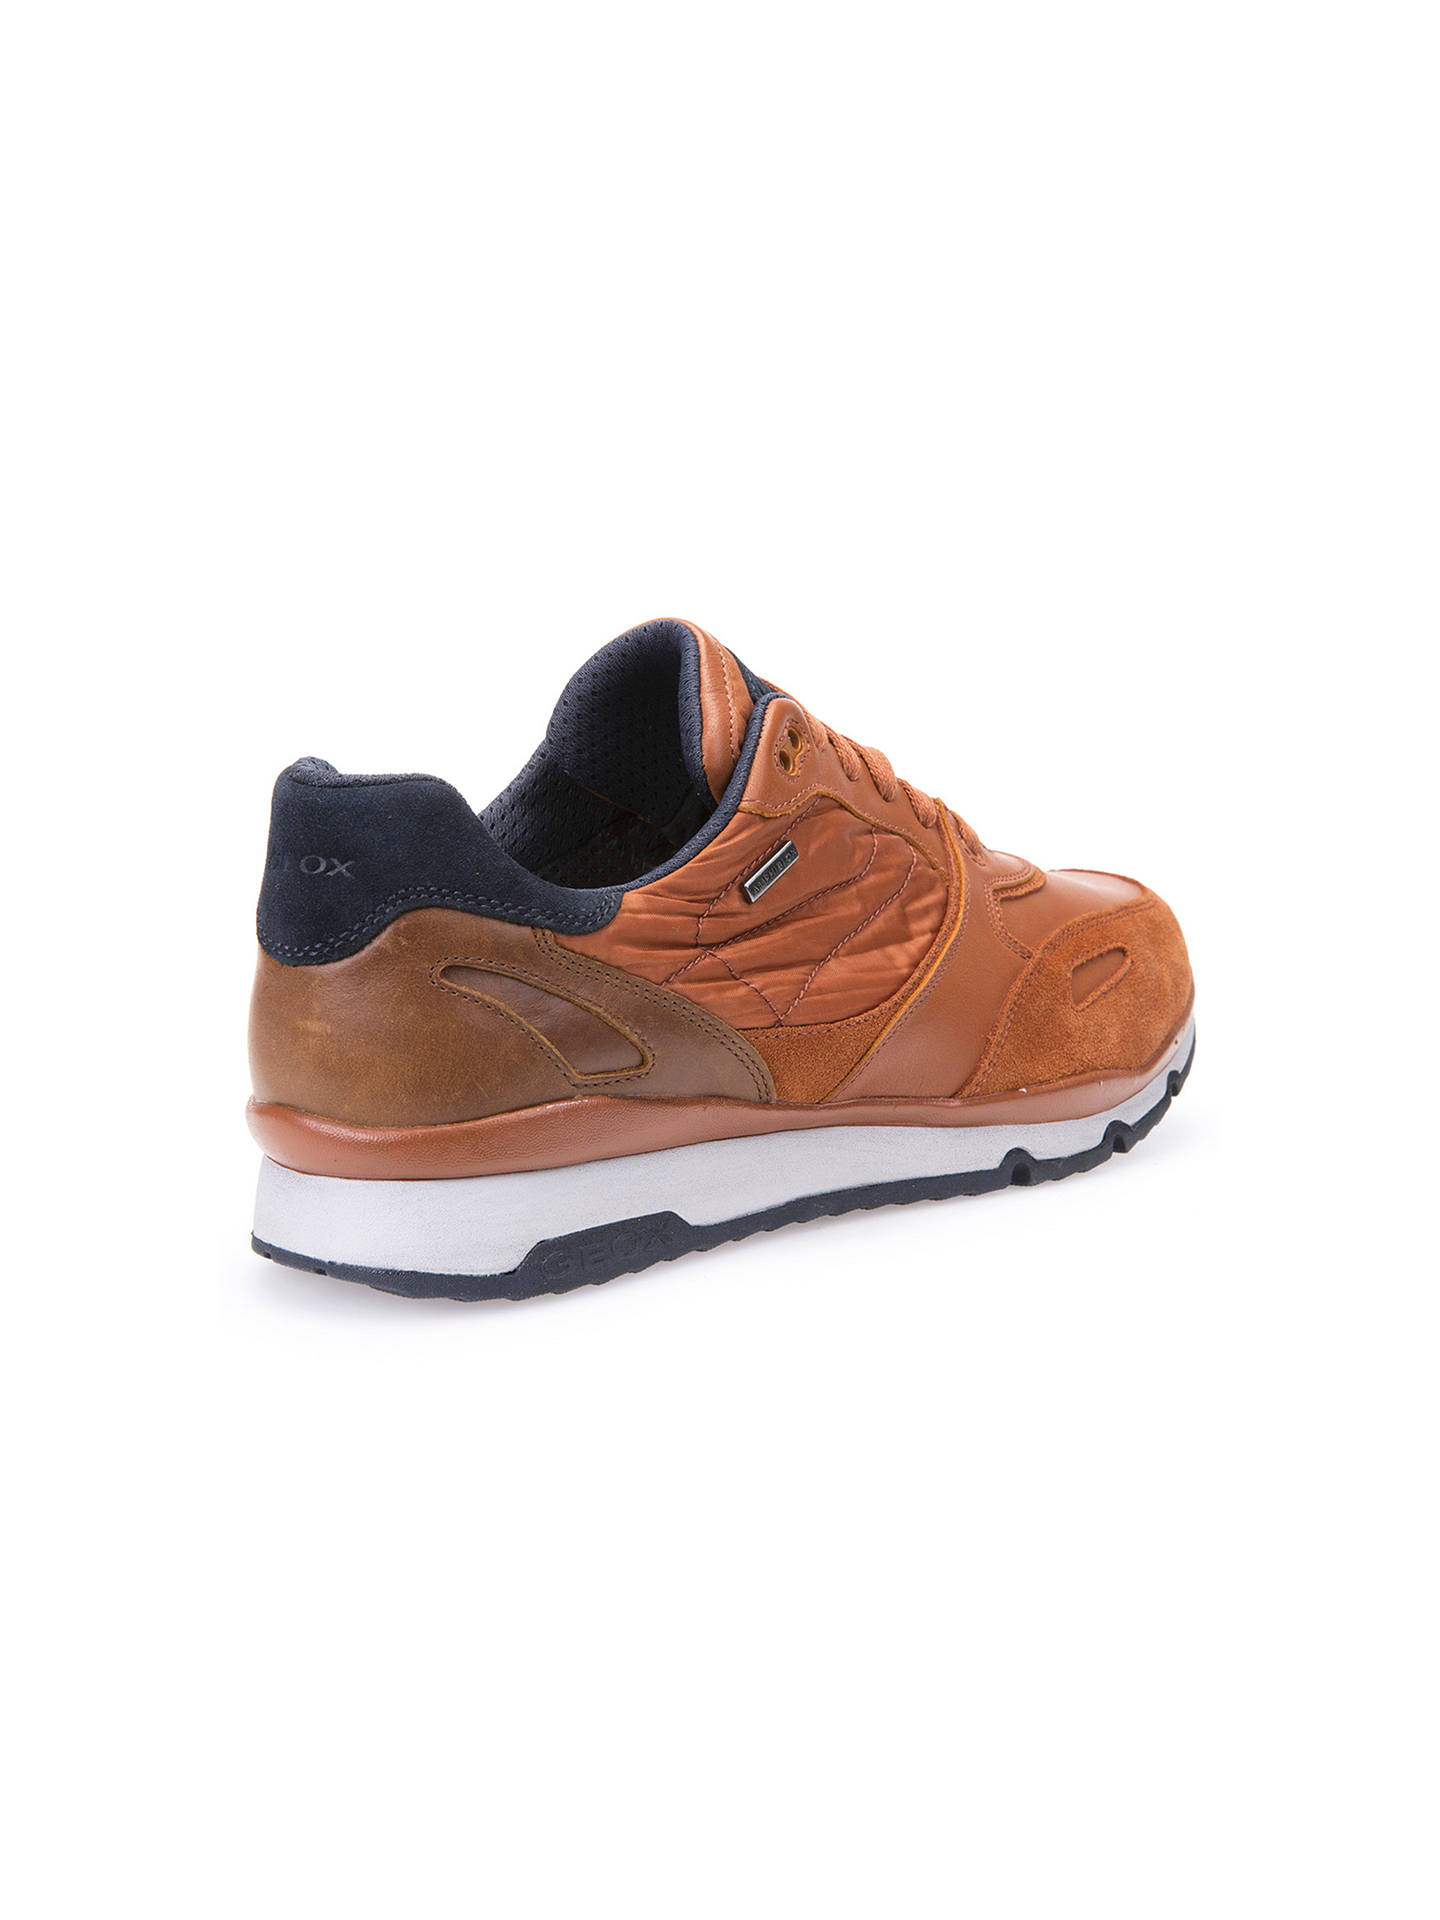 Geox Sandro ABX Trainers at John Lewis & Partners